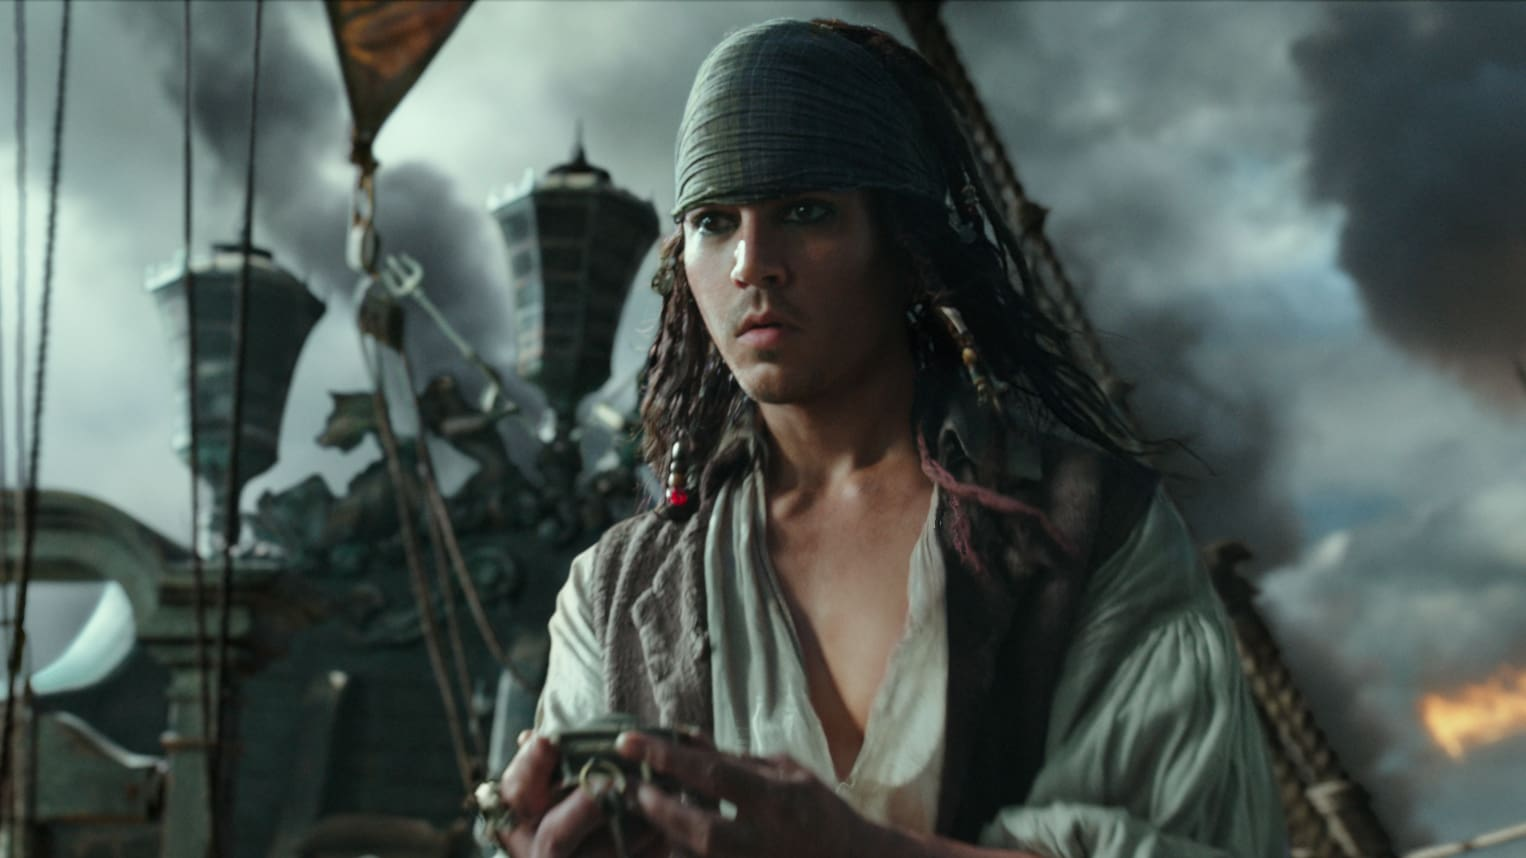 Henry Turner, played by Brenton Thwaites, the movie Pirates of the Caribbean: Dead Men Tell No Tales